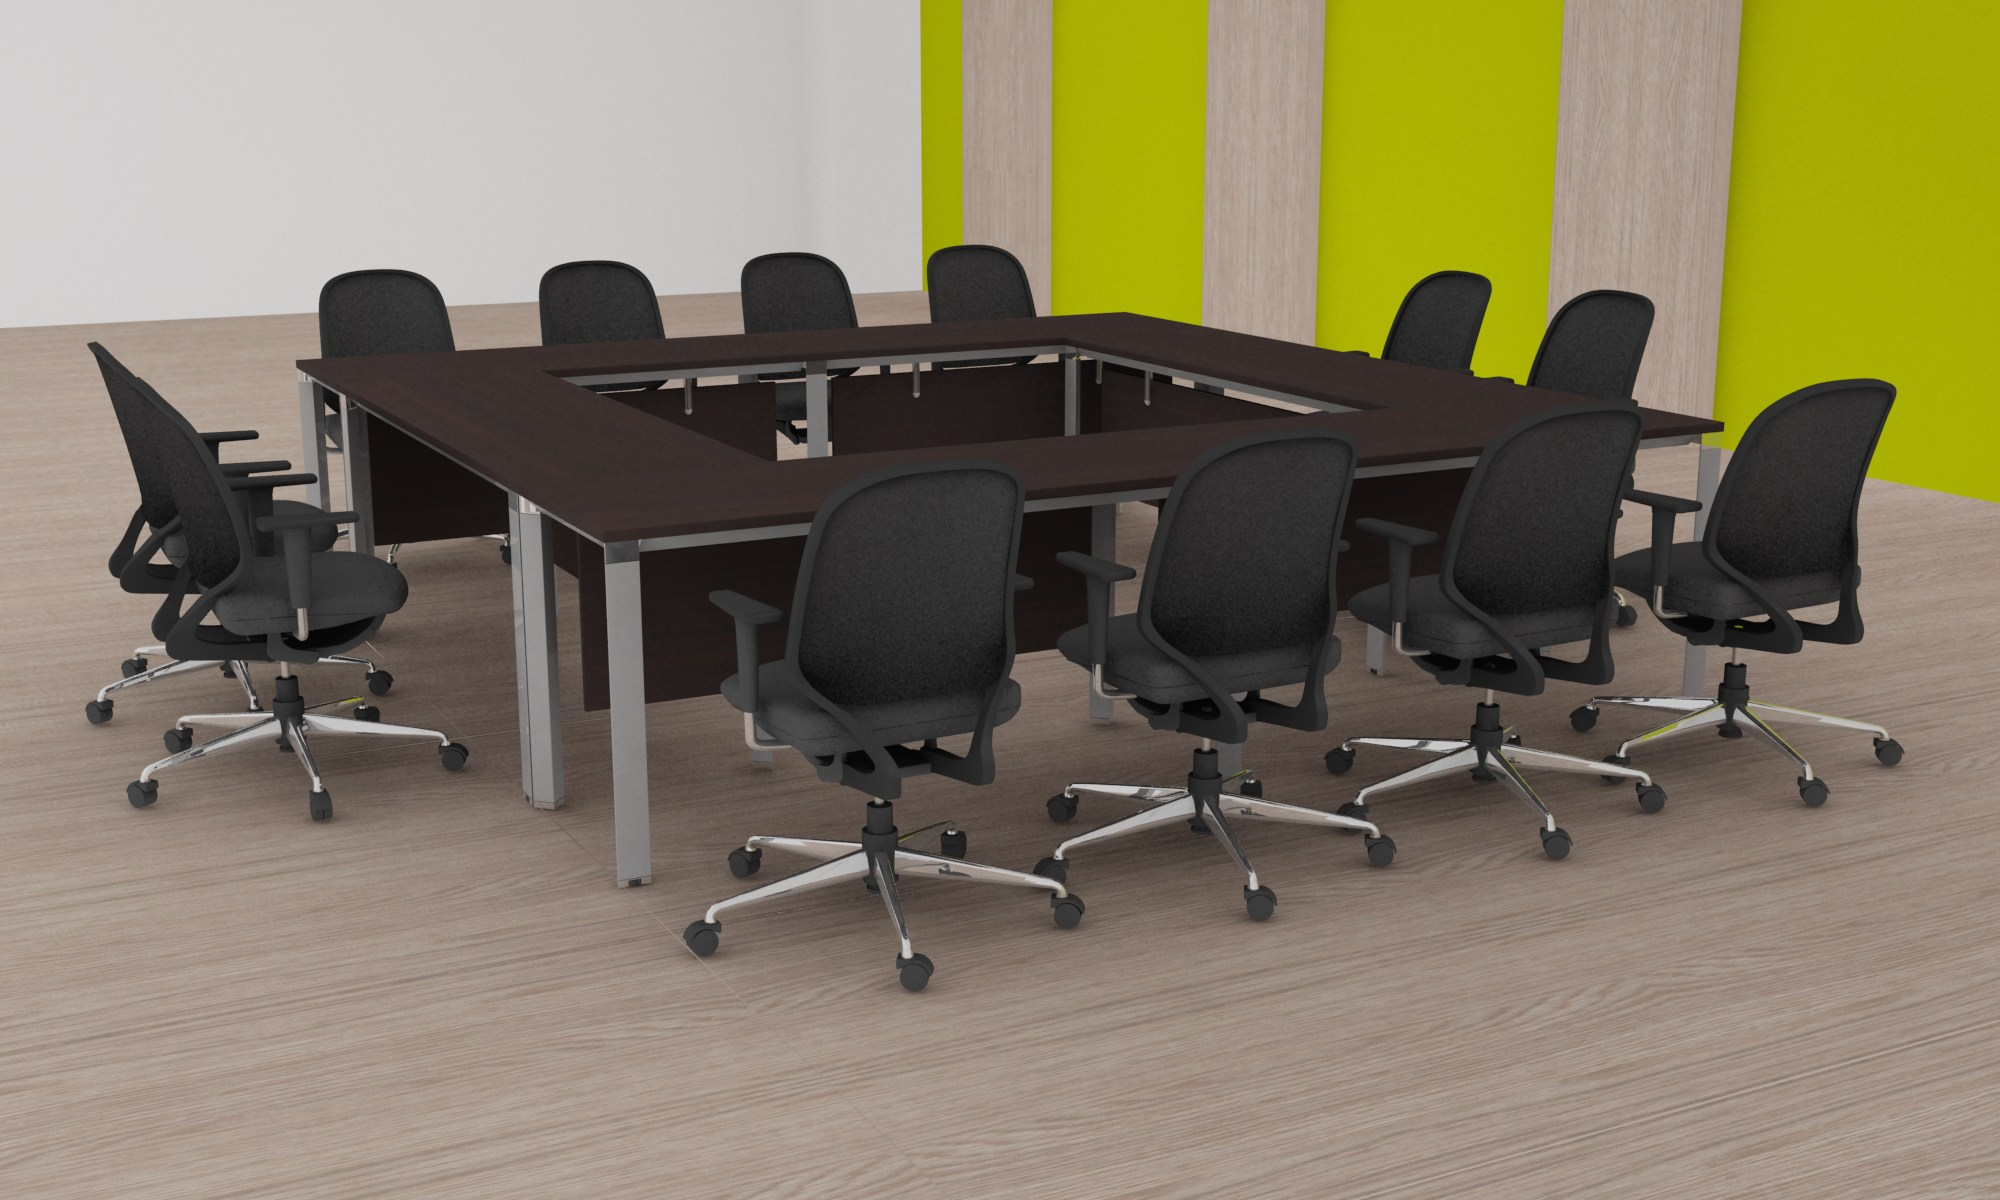 LINZ InternationalMeeting Table - Square conference room table